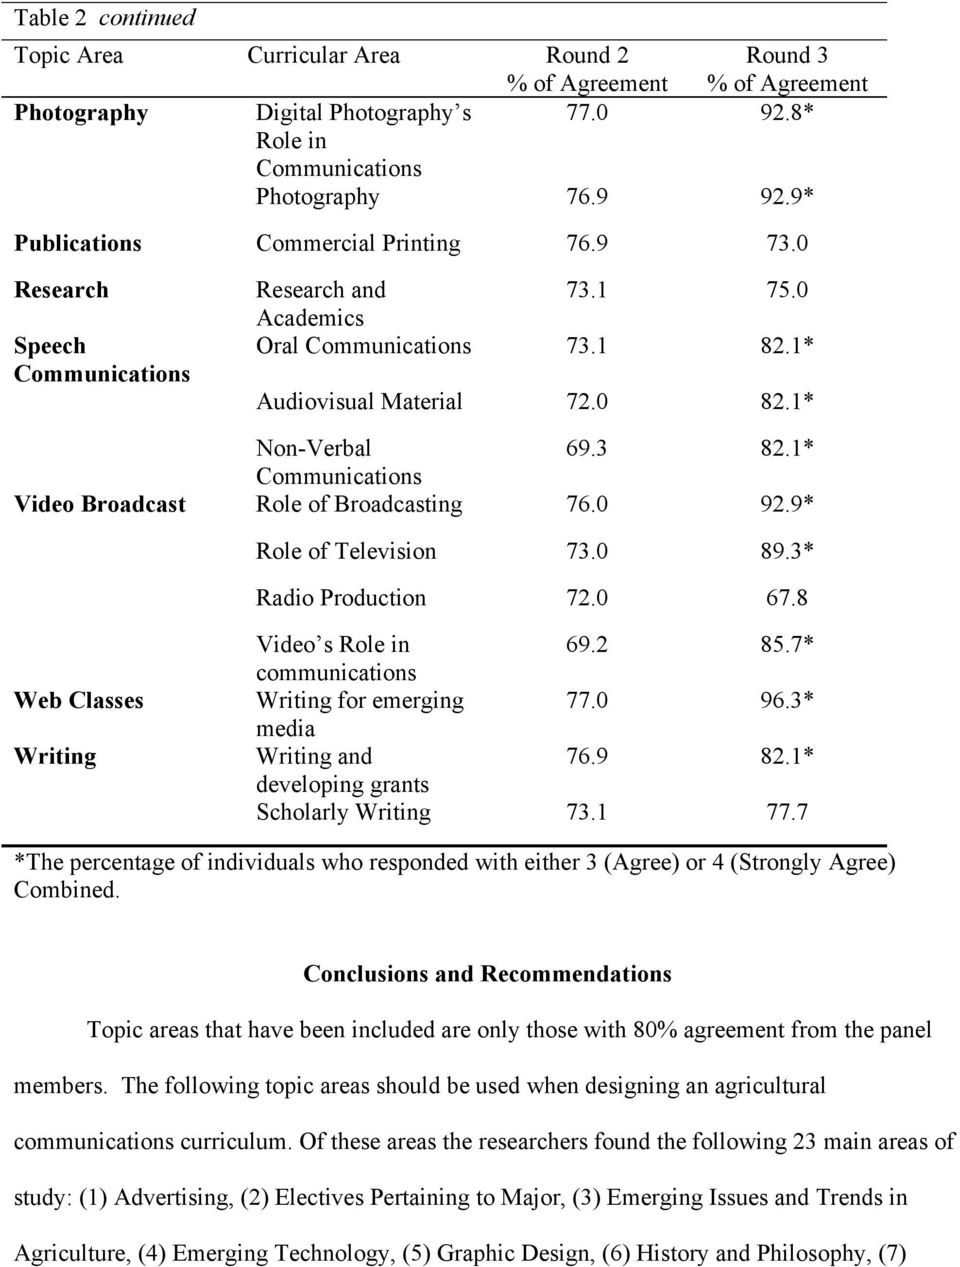 1* Communications Video Broadcast Role of Broadcasting 76.0 92.9* Role of Television 73.0 89.3* Radio Production 72.0 67.8 Web Classes Writing Video s Role in communications 69.2 85.